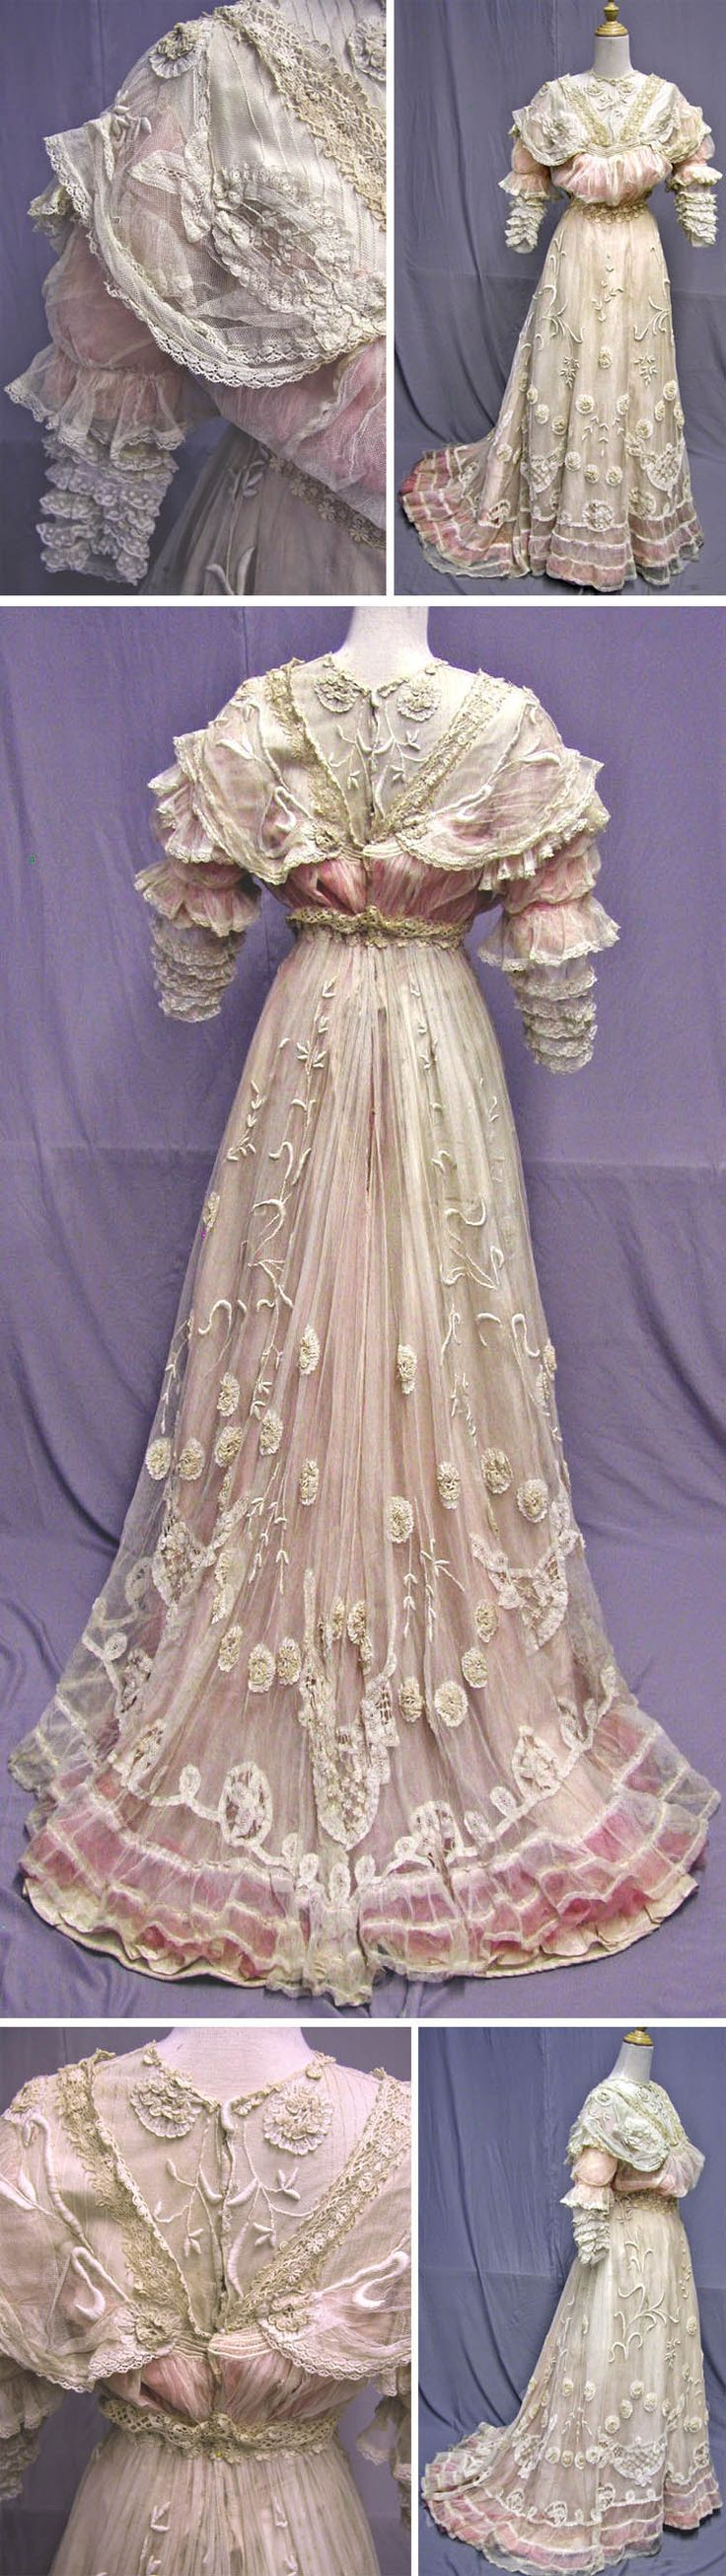 362 best the 1908 images on Pinterest | Vintage gowns, 1900s fashion ...